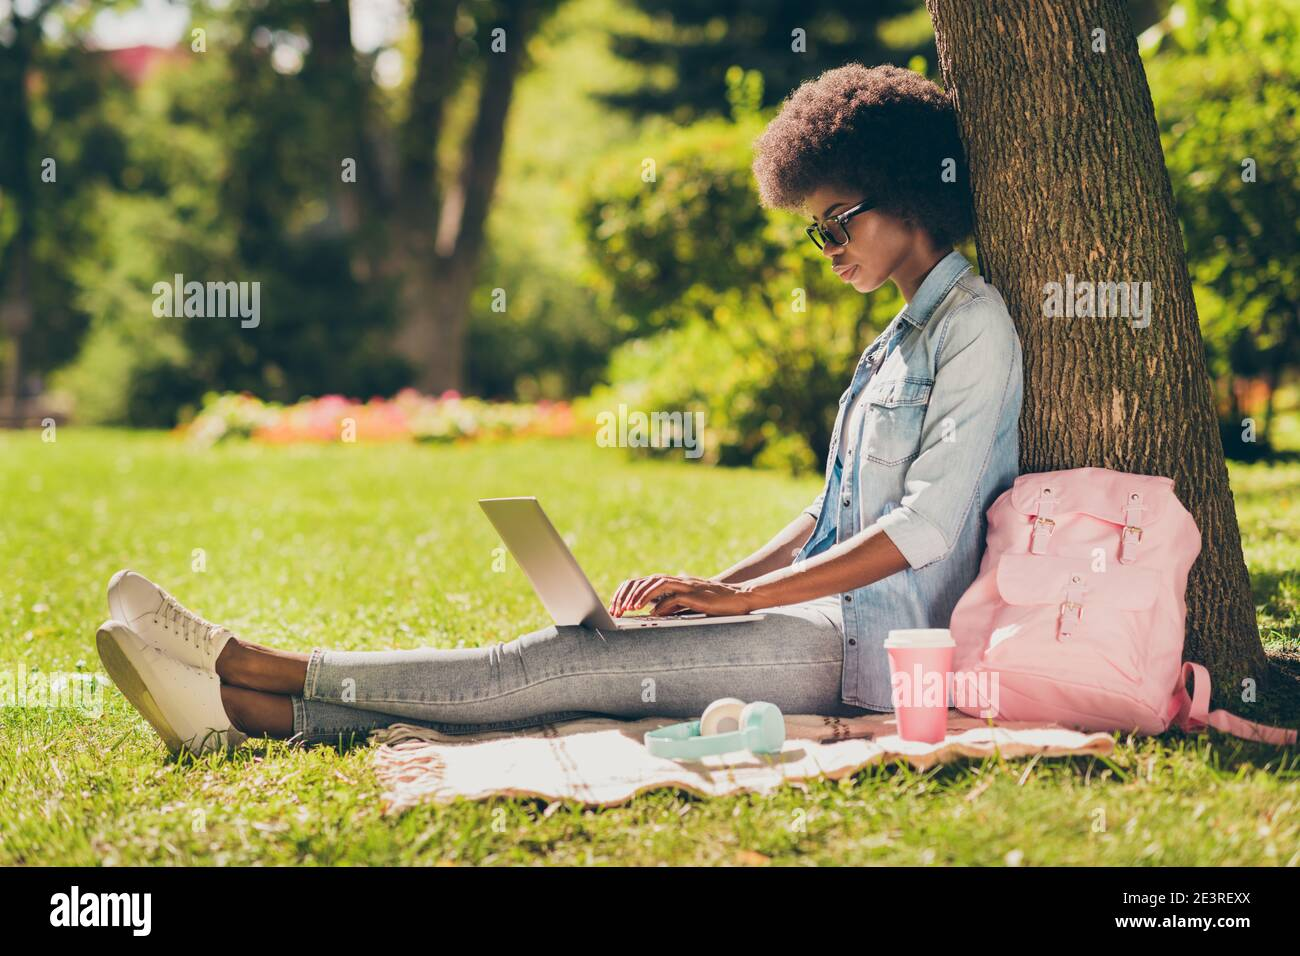 Full length body size side profile photo of black skinned woman with curly hair working on laptop browsing internet in city park Stock Photo